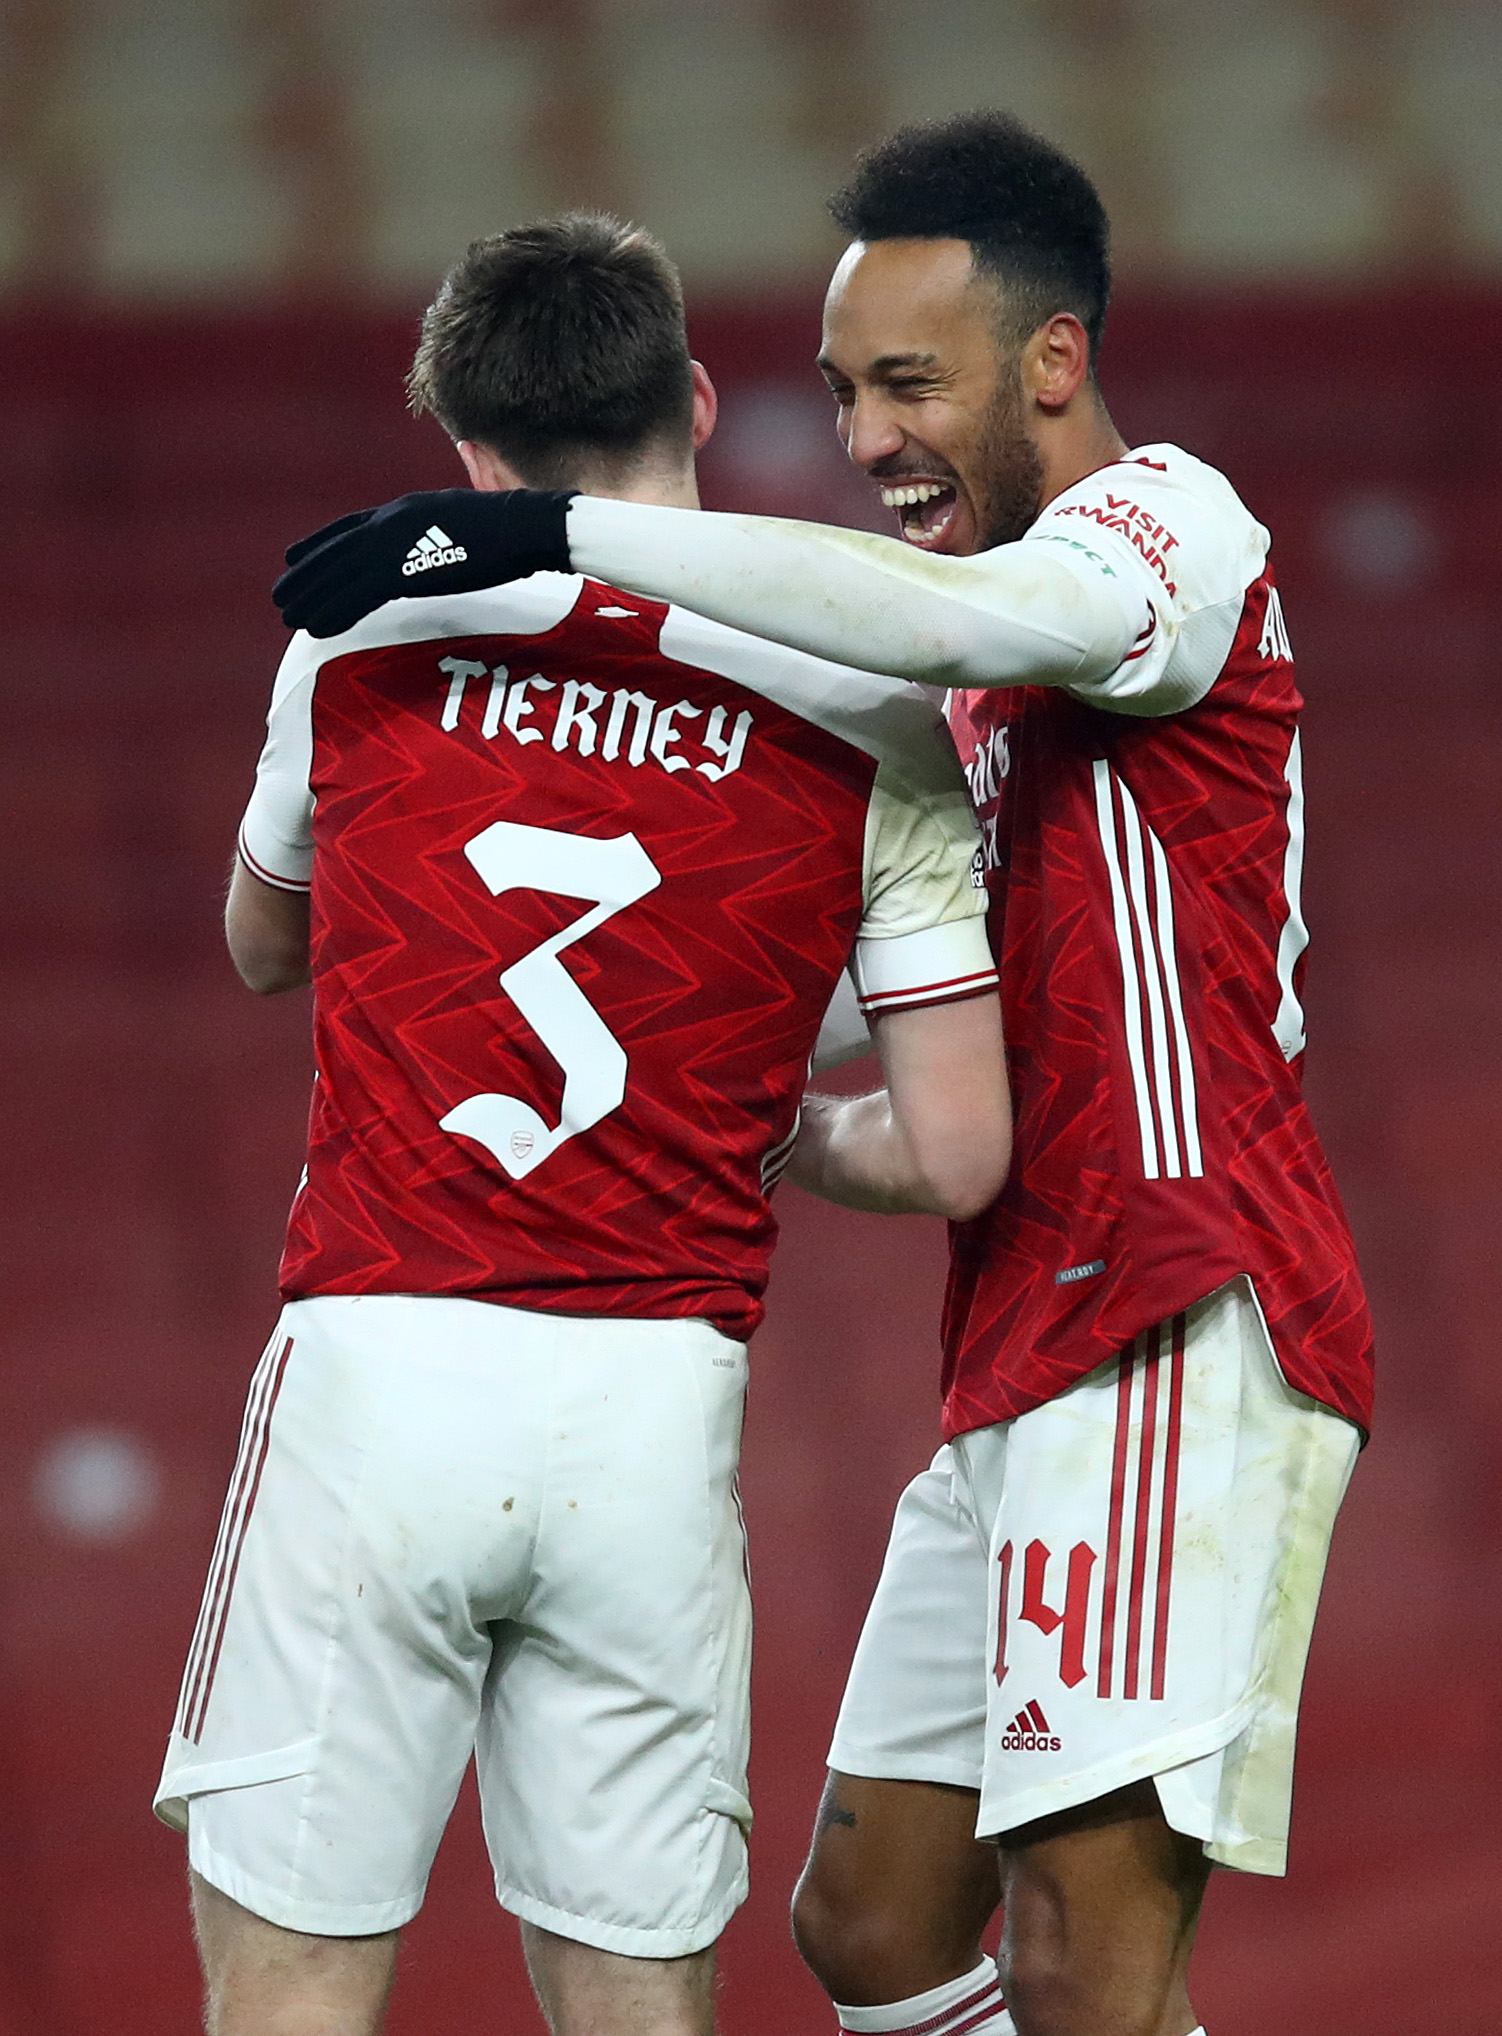 Pierre-Emerick Aubameyang celebrates with Kieran Tierney